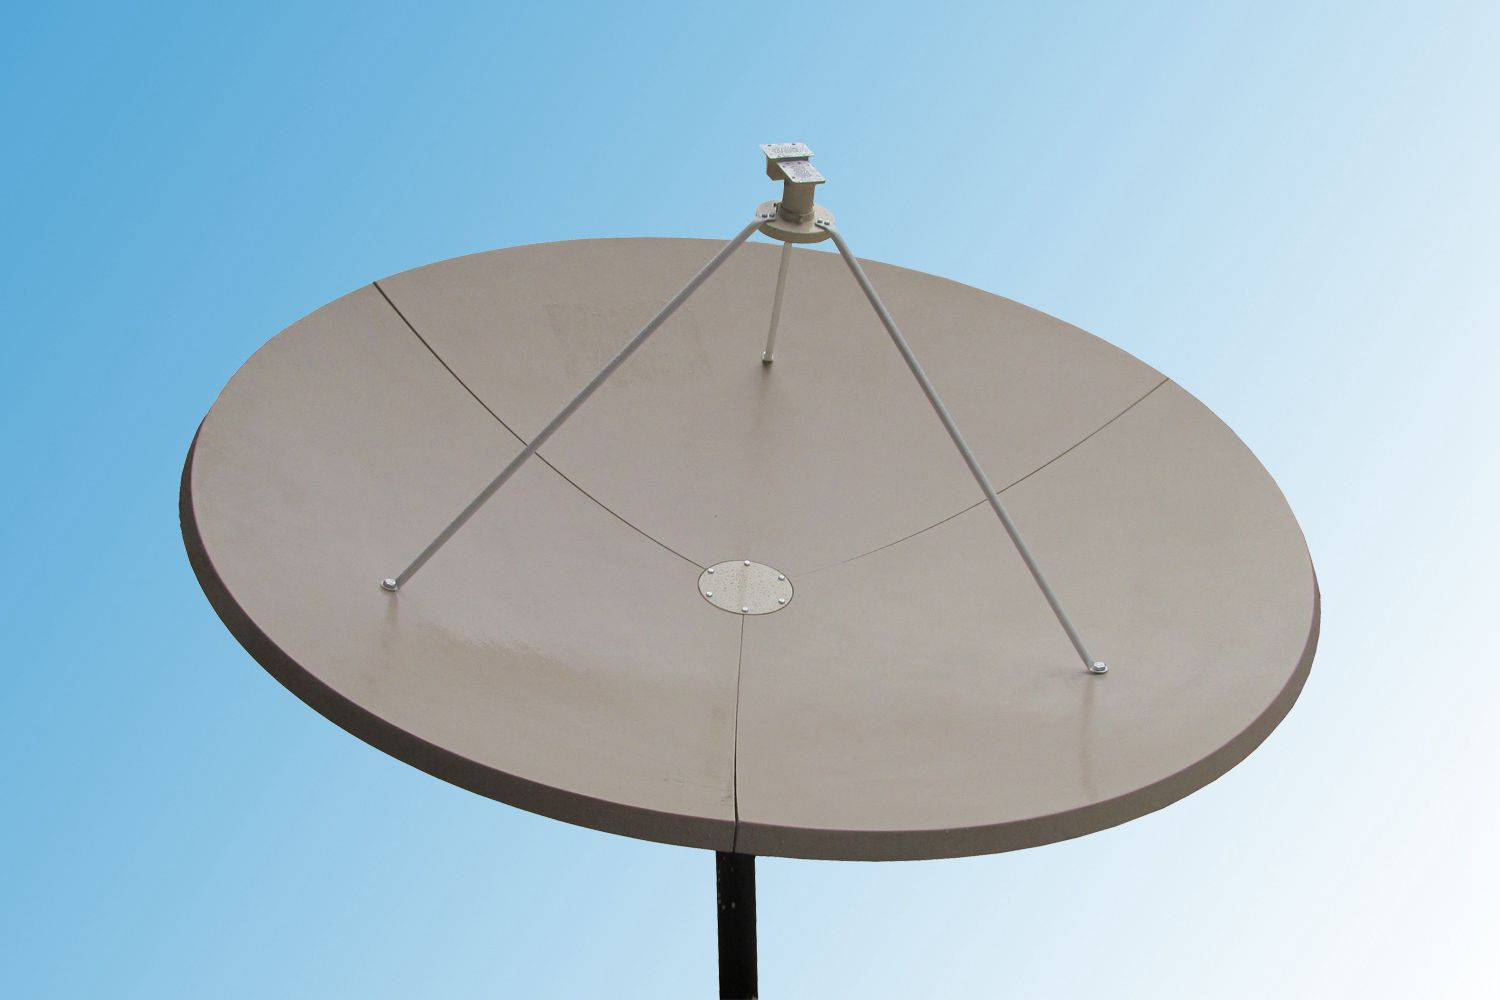 3m rx only antenna 3m tvro antenna  dish 3m receive only antenna Fiberglass in Skin Fiberglass Sheets